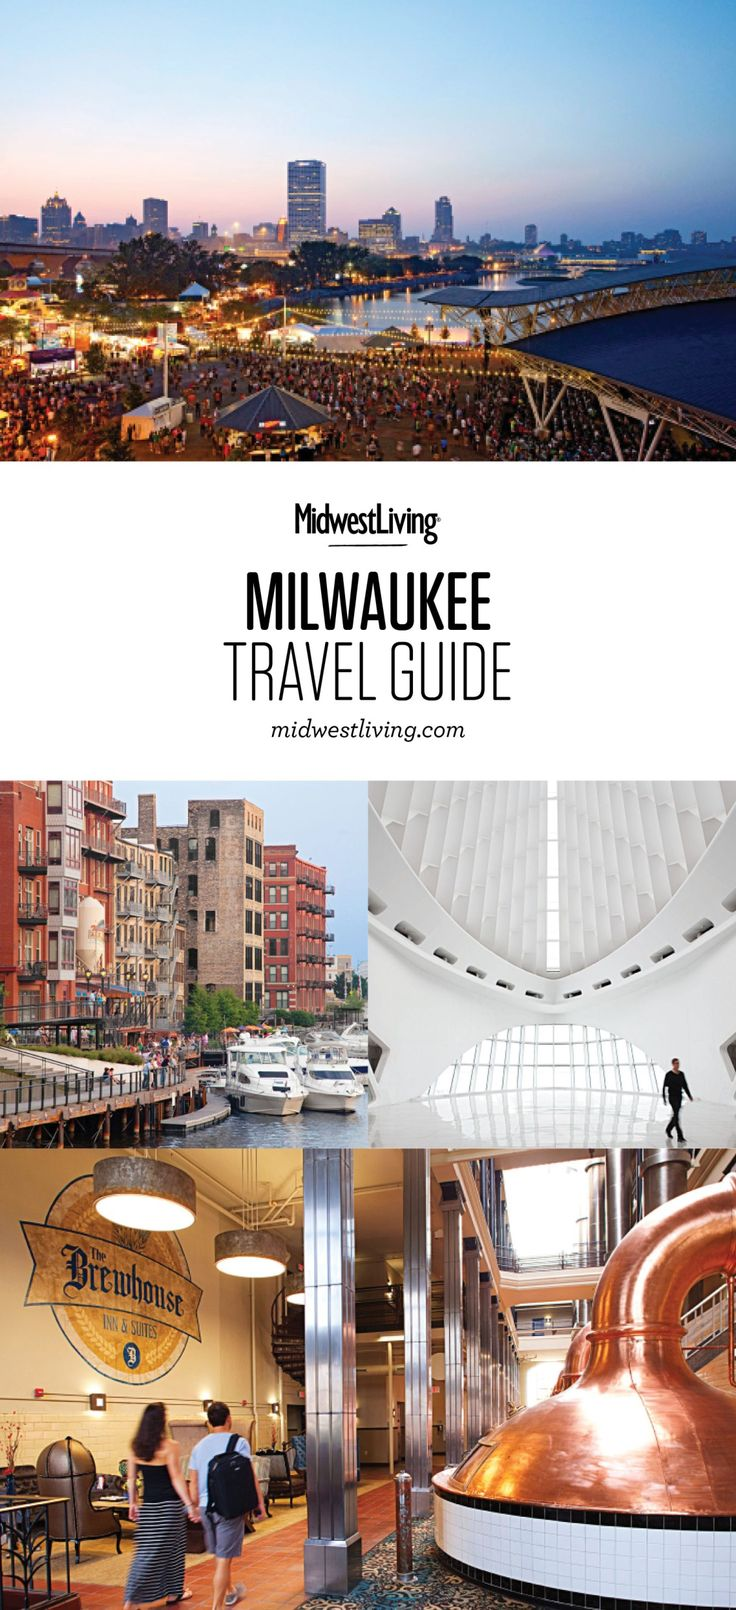 Milwaukee maintains ties to its German heritage while celebrating the present at a motorcycle museum and fantastic festivals along Lake Michigan. Check out our picks for what to do, where to eat and where to stay in Milwaukee. Wisconsin